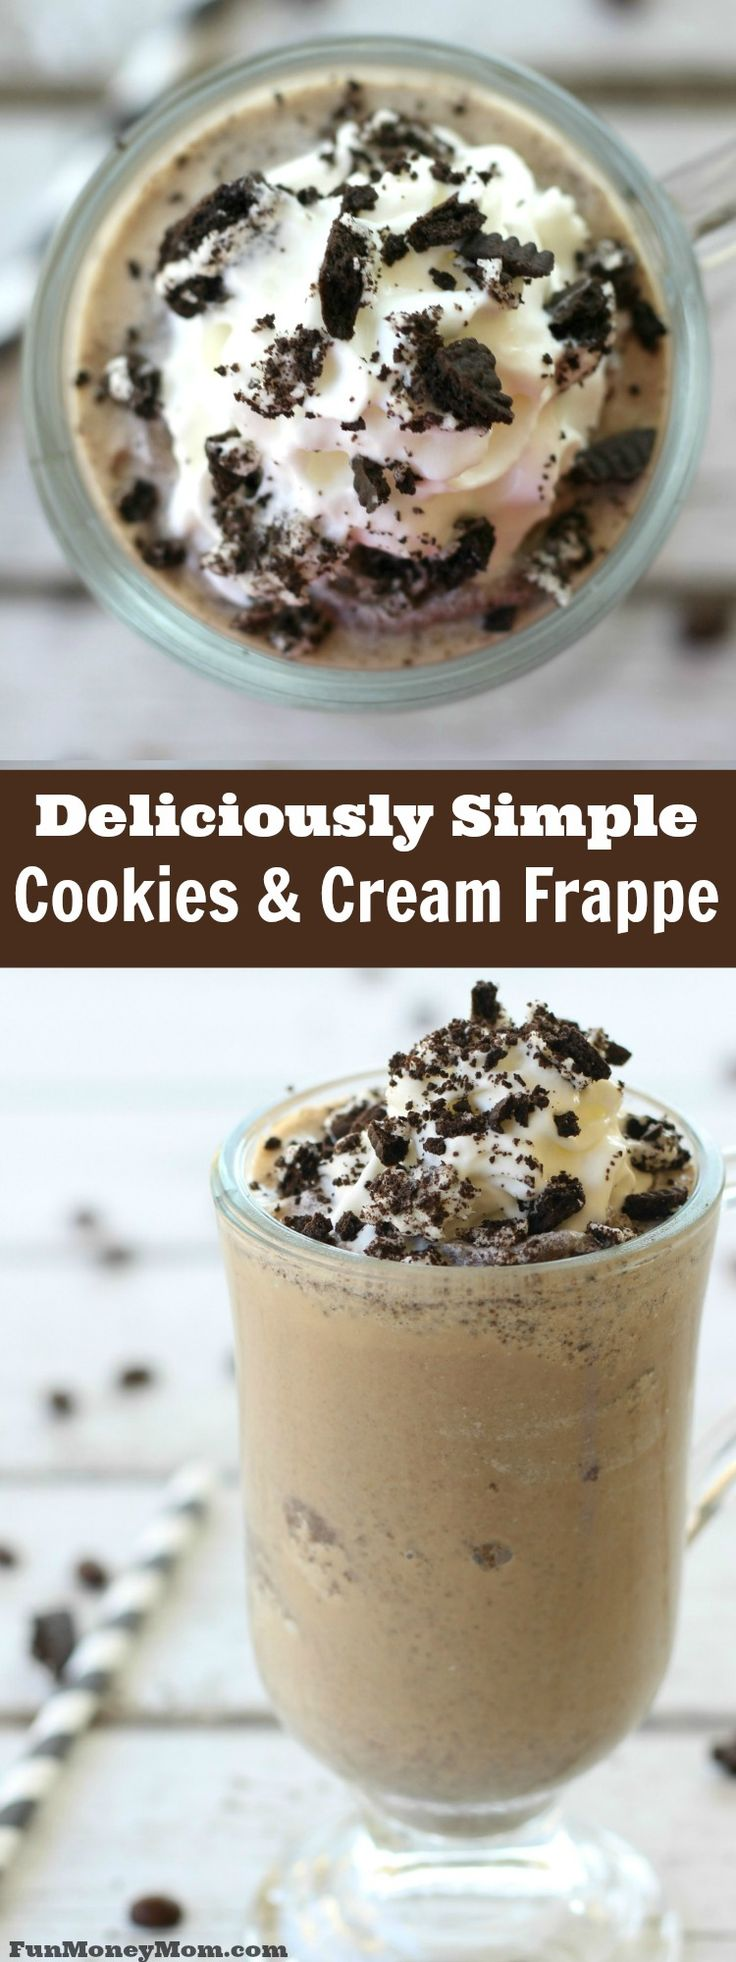 25 Best Ideas About Frappe Recipe On Pinterest Frappe